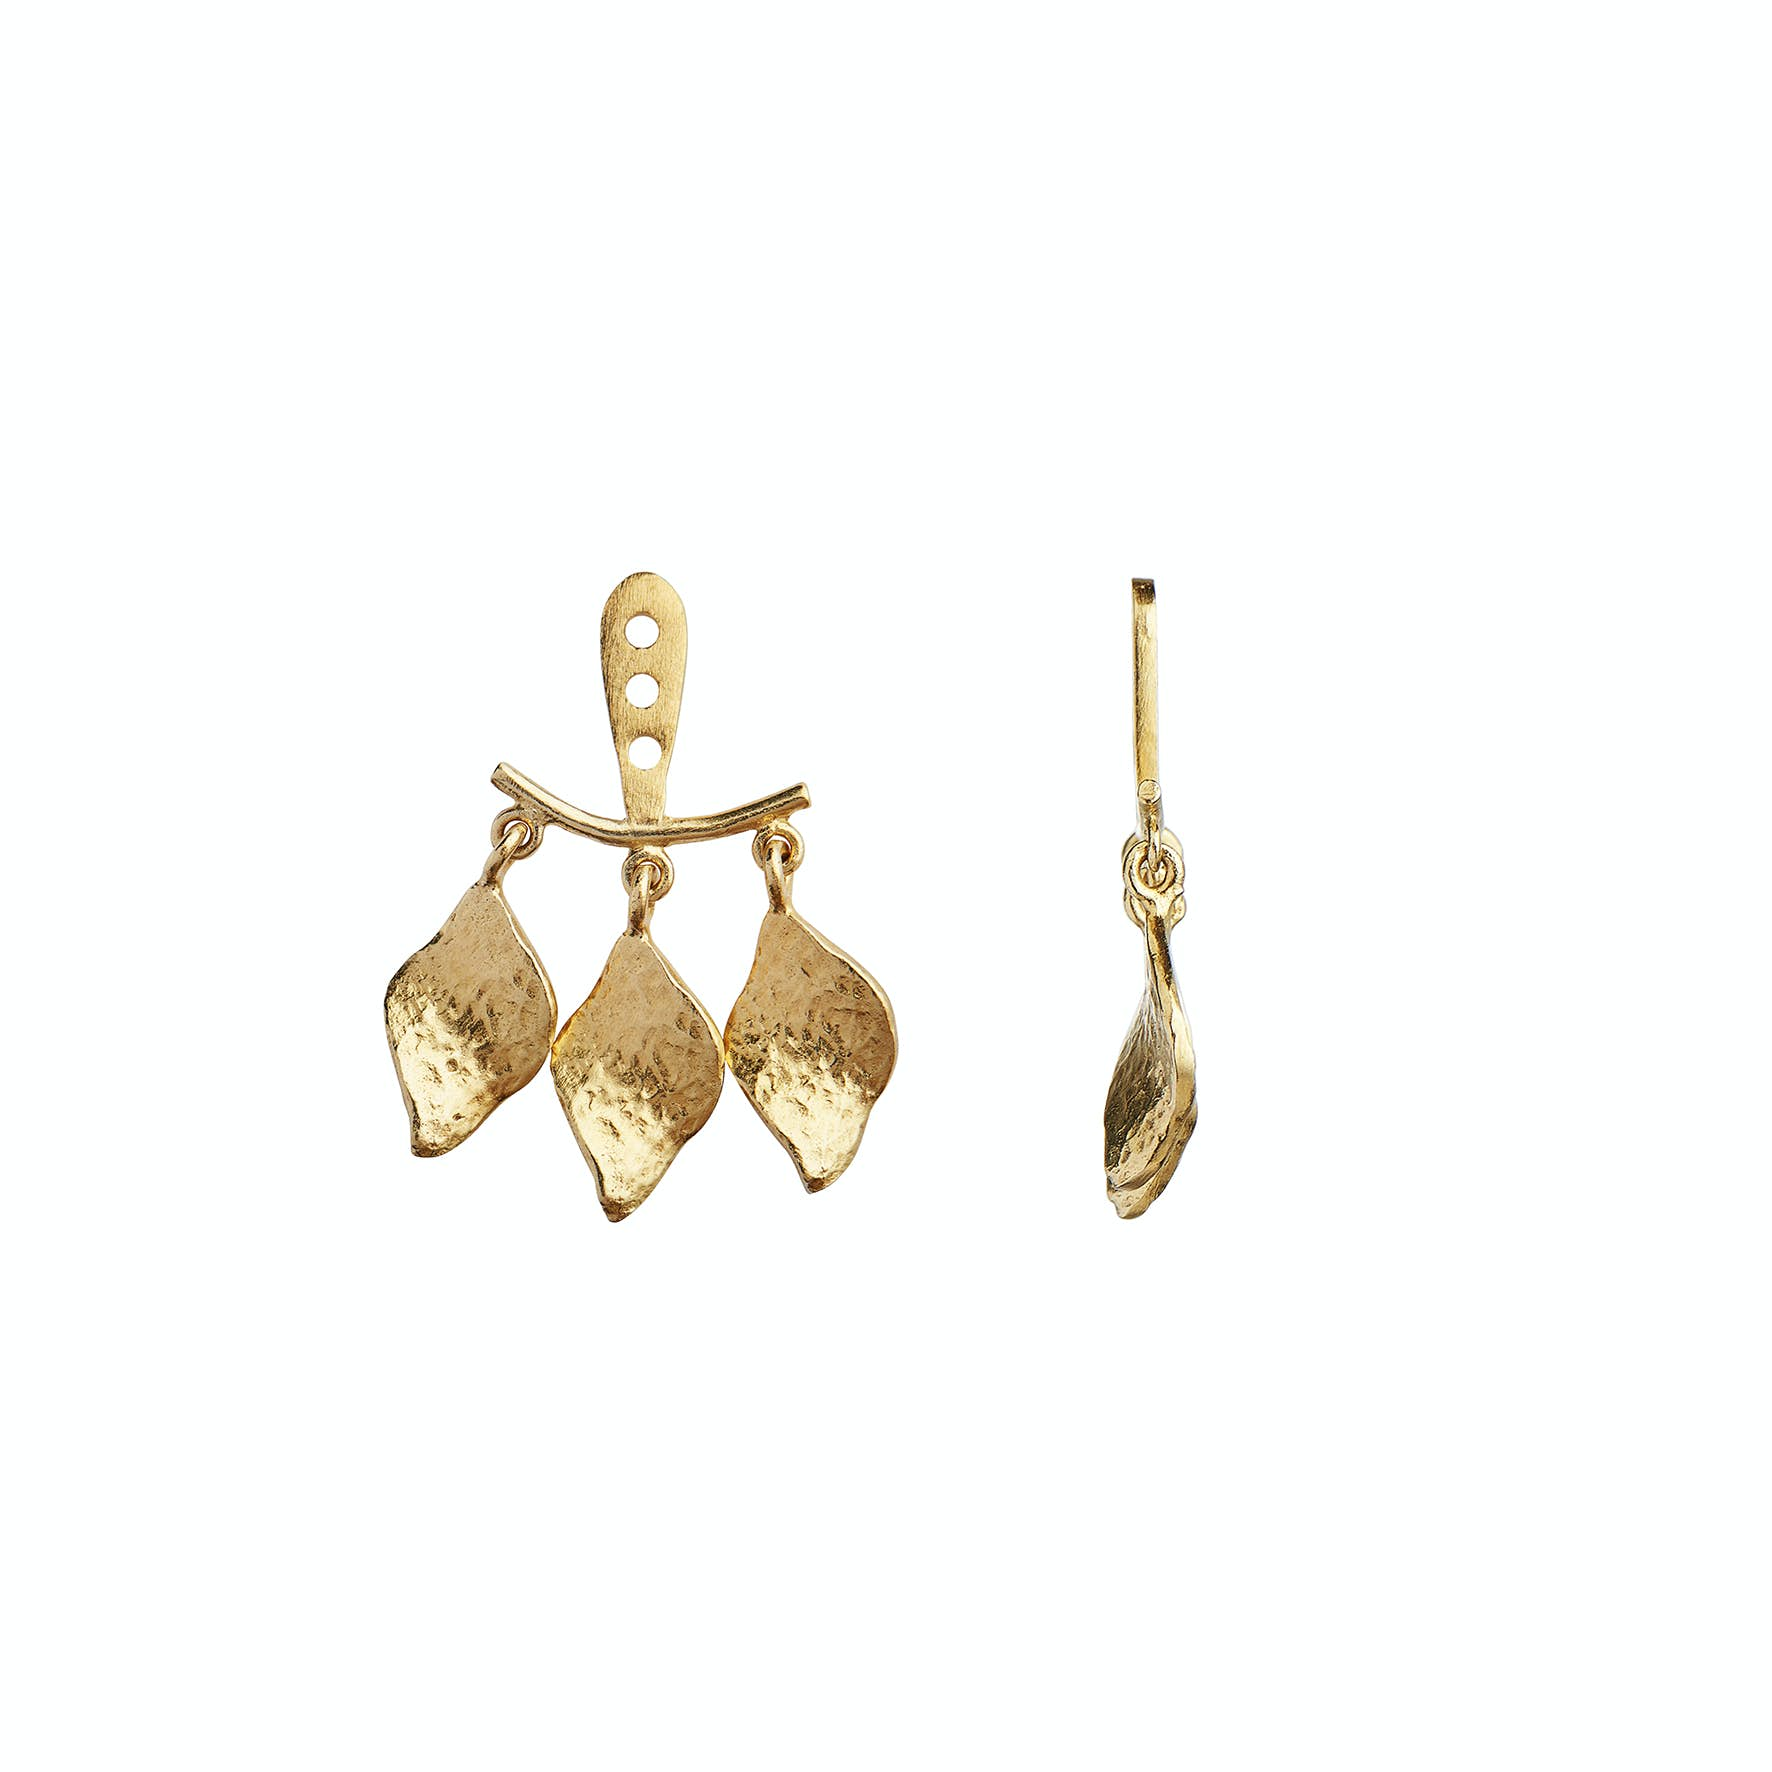 Dancing Three Ile De L'Amour Behind Ear Earring fra STINE A Jewelry i Forgyldt-Sølv Sterling 925